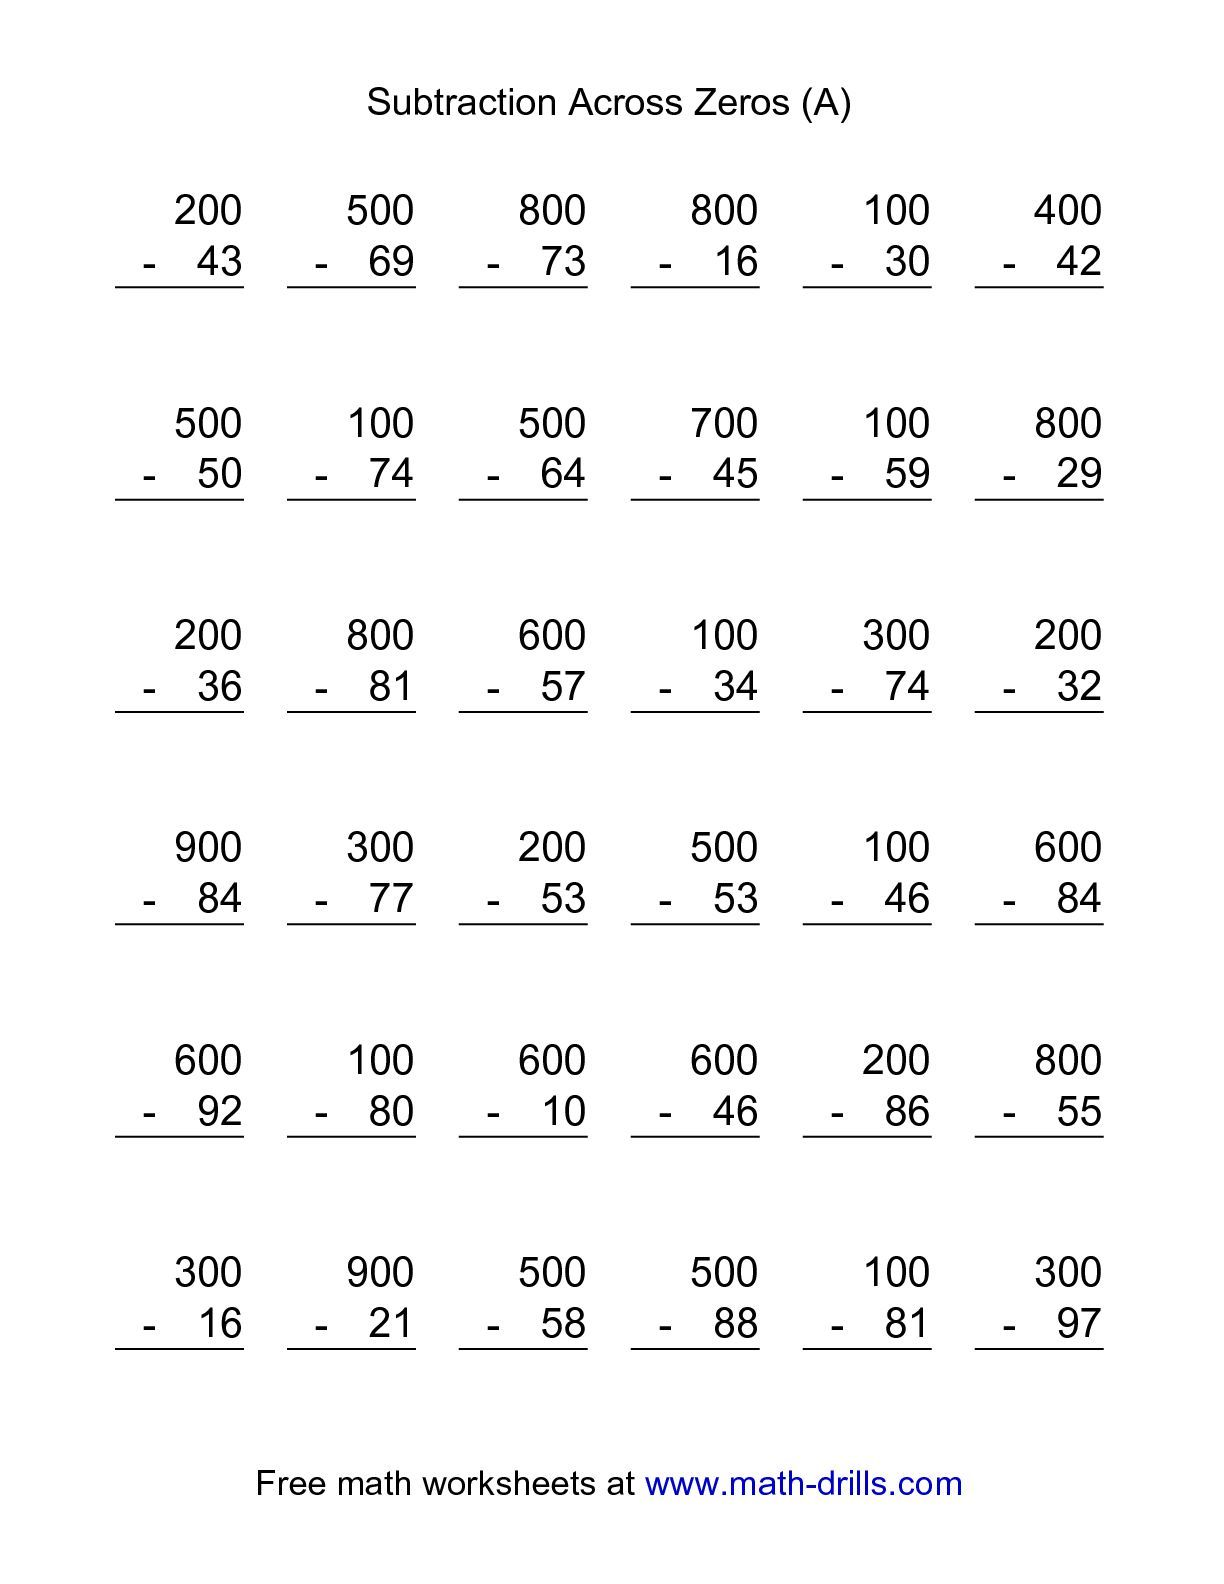 The Subtraction Across Zeros 36 Questions A math worksheet – Subtraction Across Zeros Worksheet